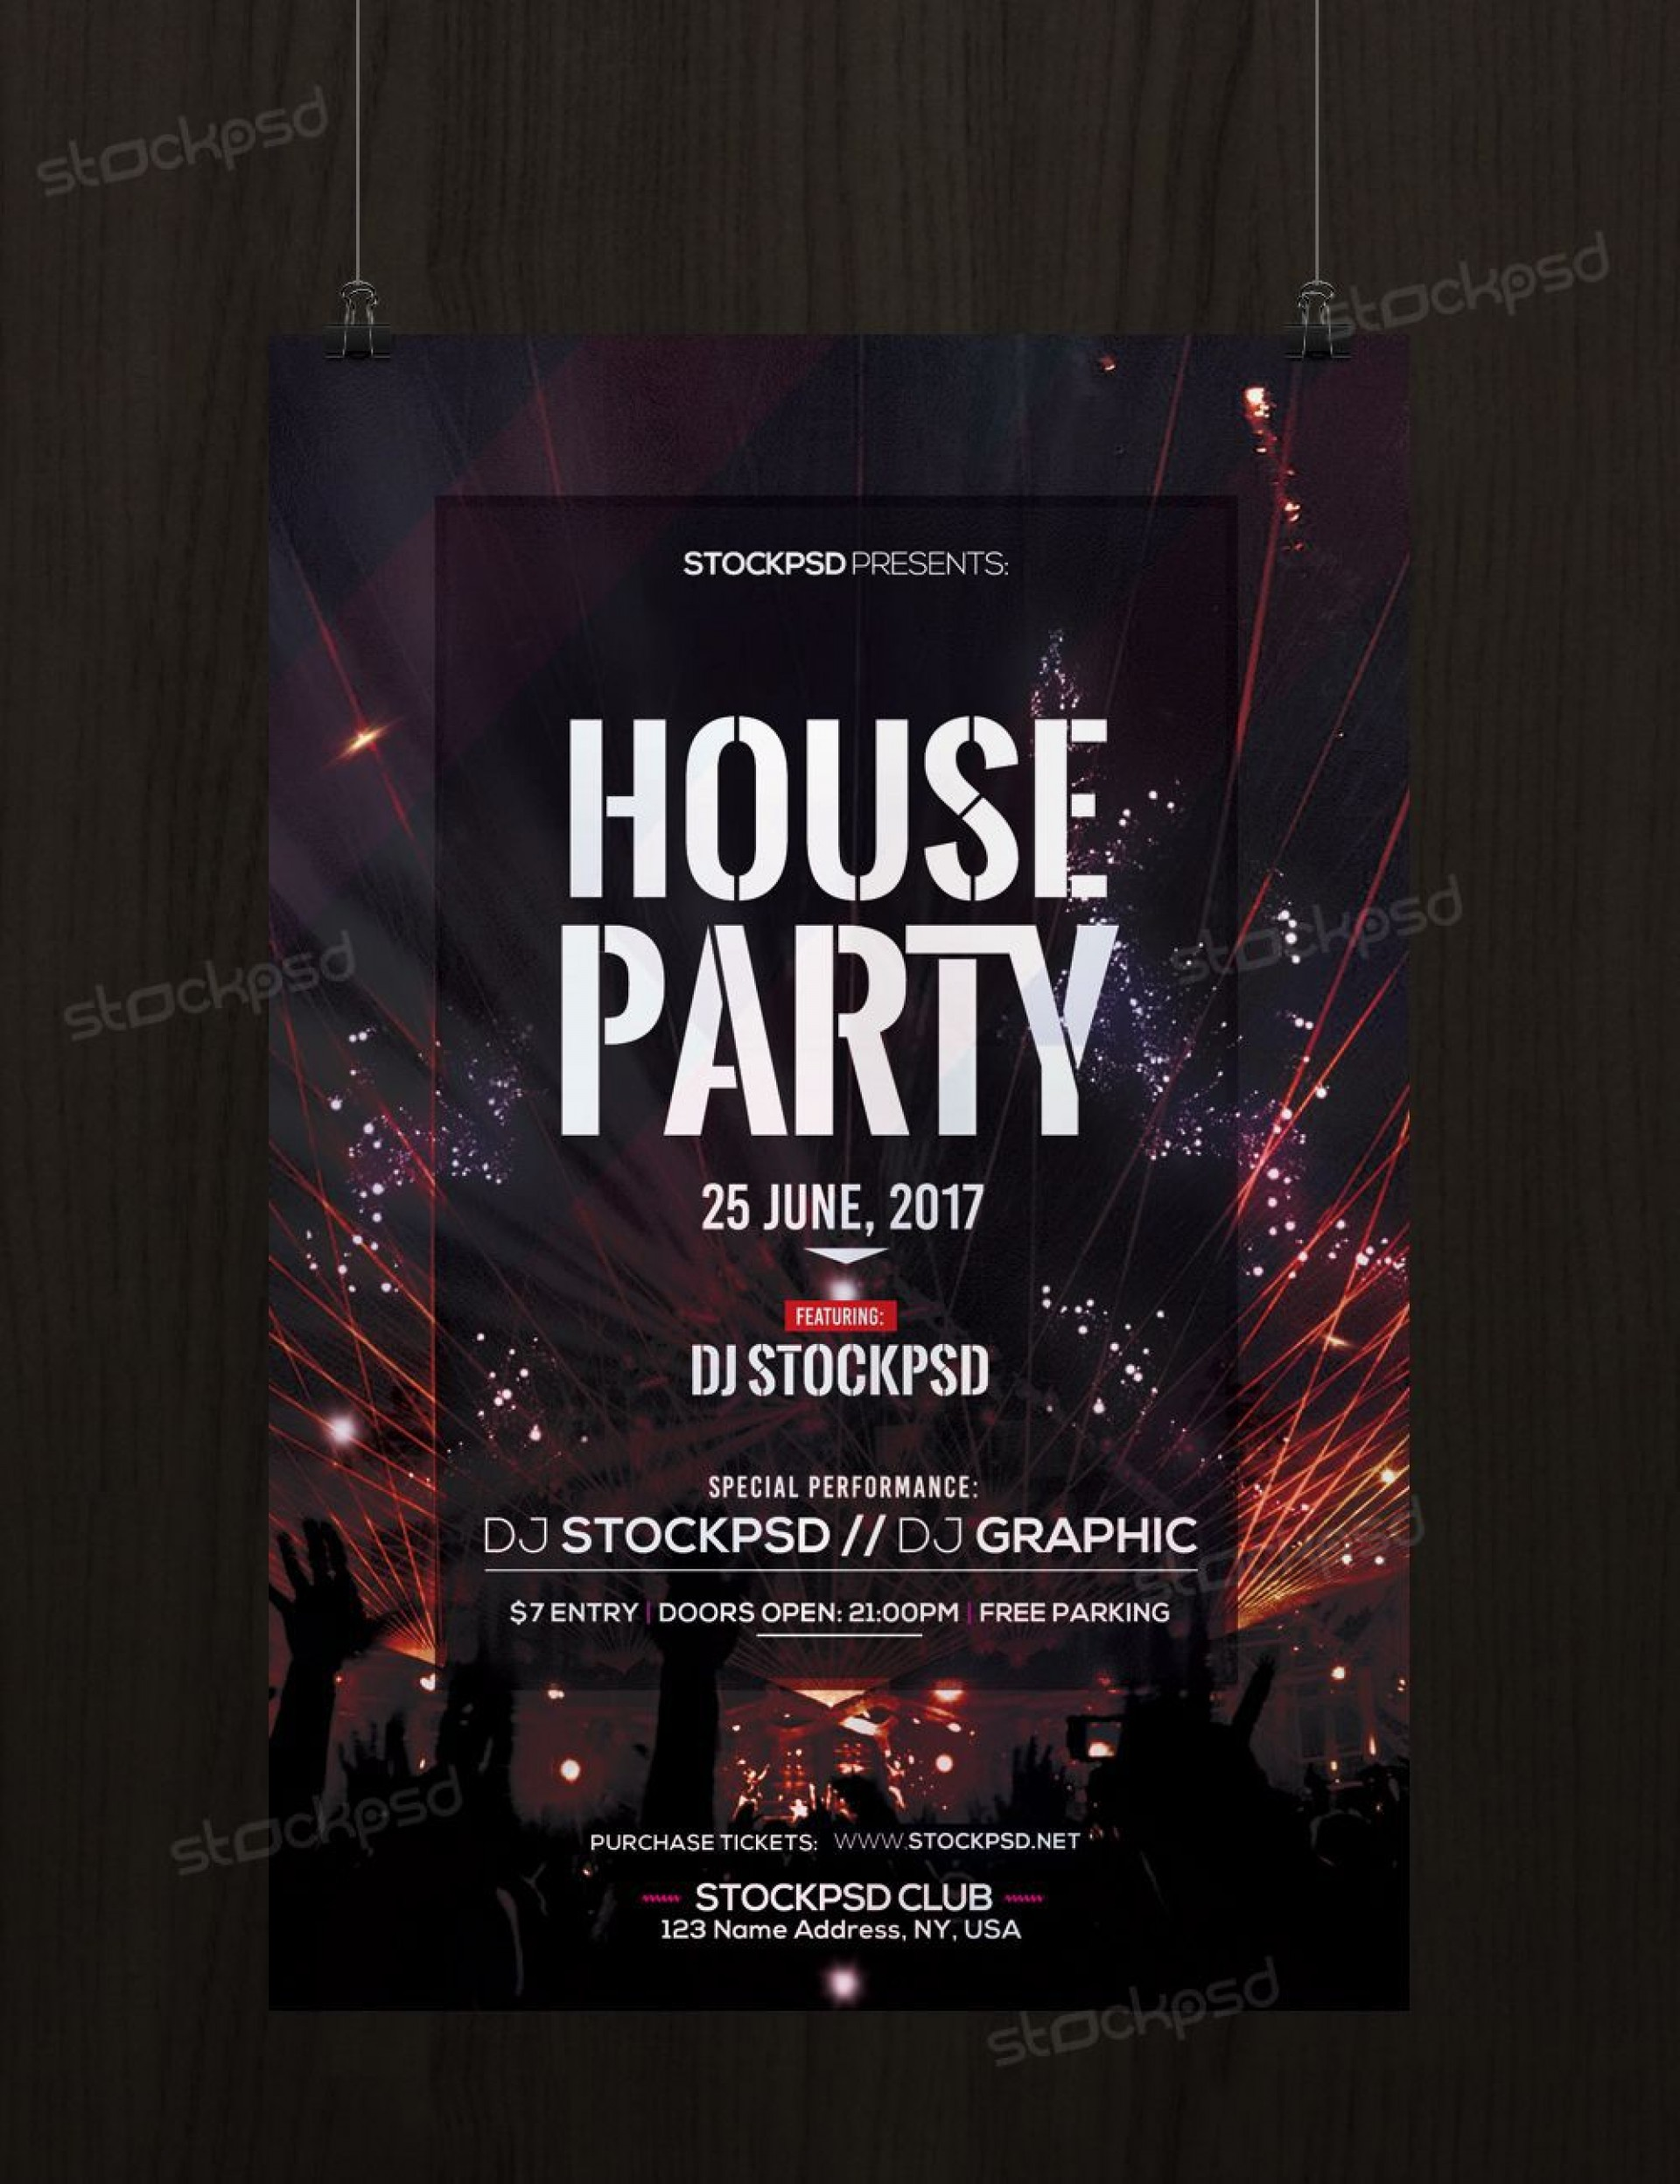 000 Formidable Party Flyer Template Free High Definition  - Photoshop Holiday Christma For Microsoft Word1920